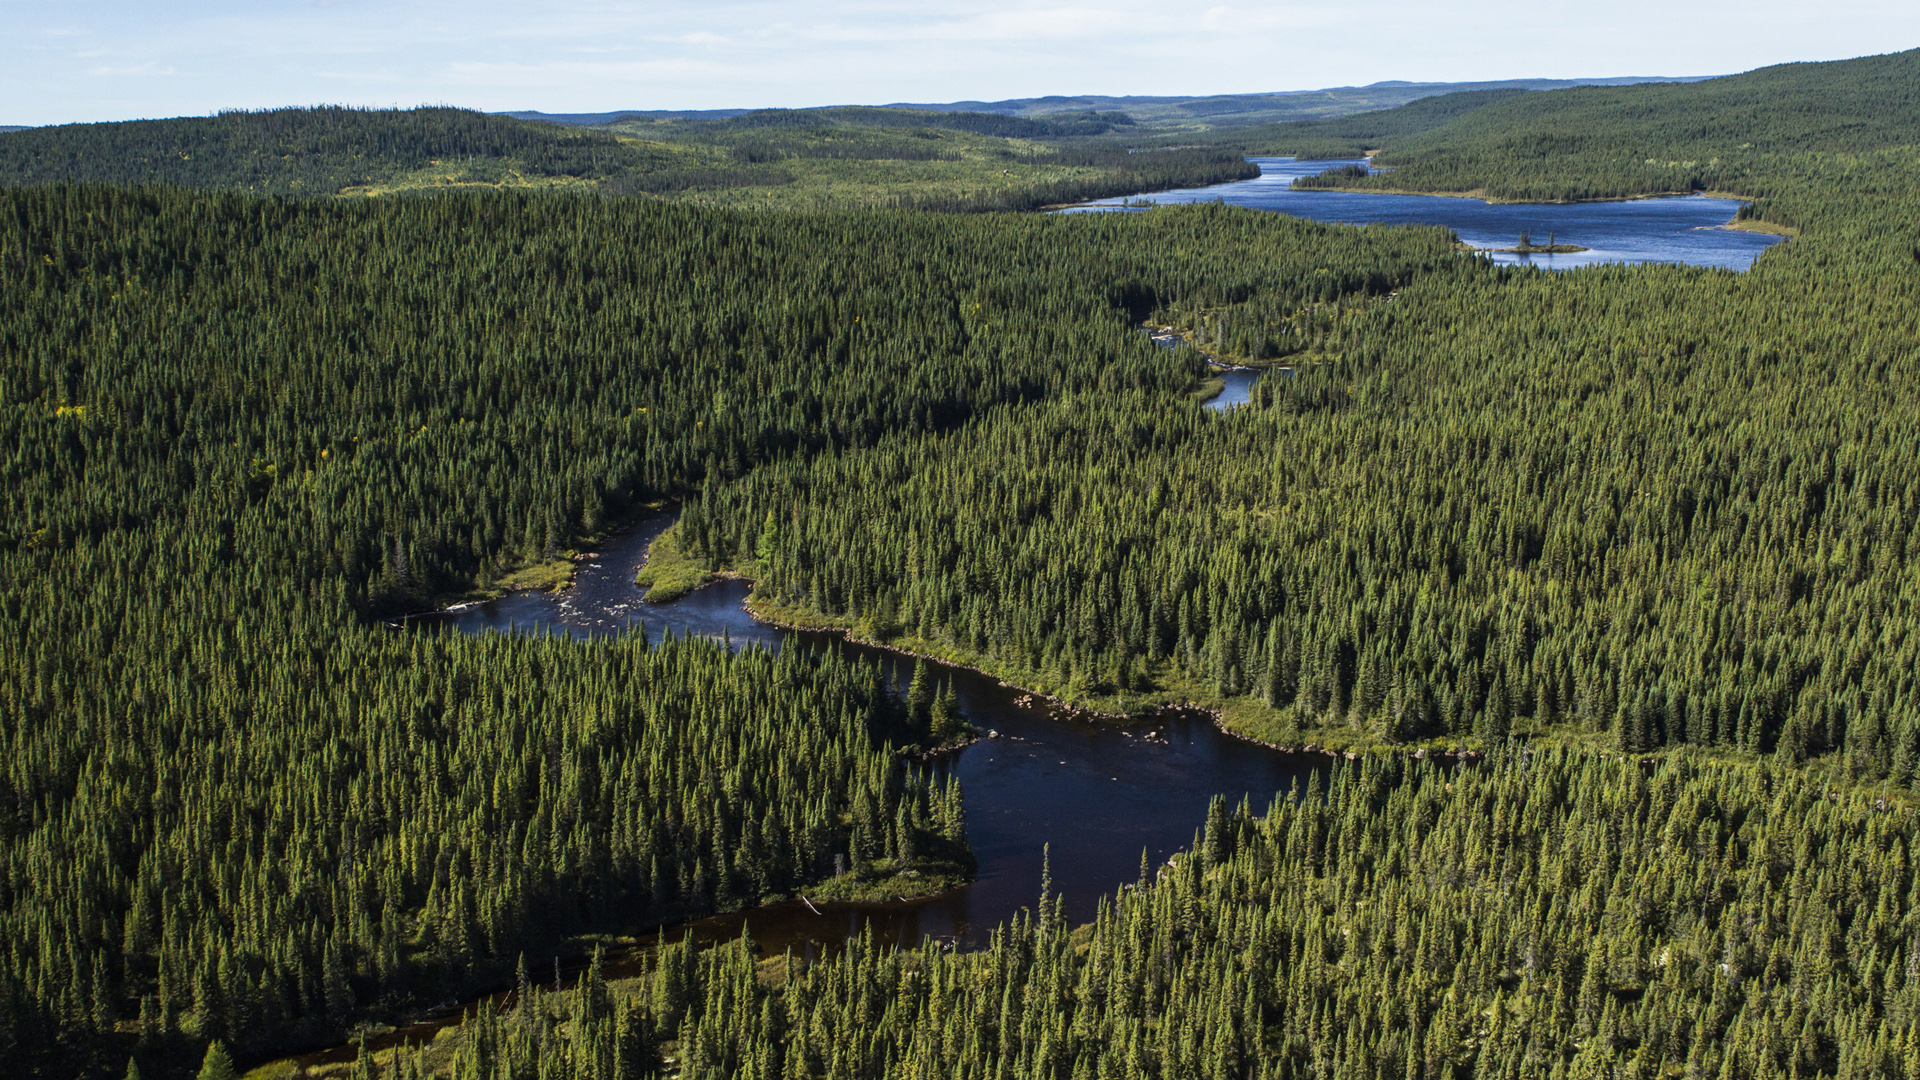 These forests are important carbon sinks. Photo: Boreal Forest Facts